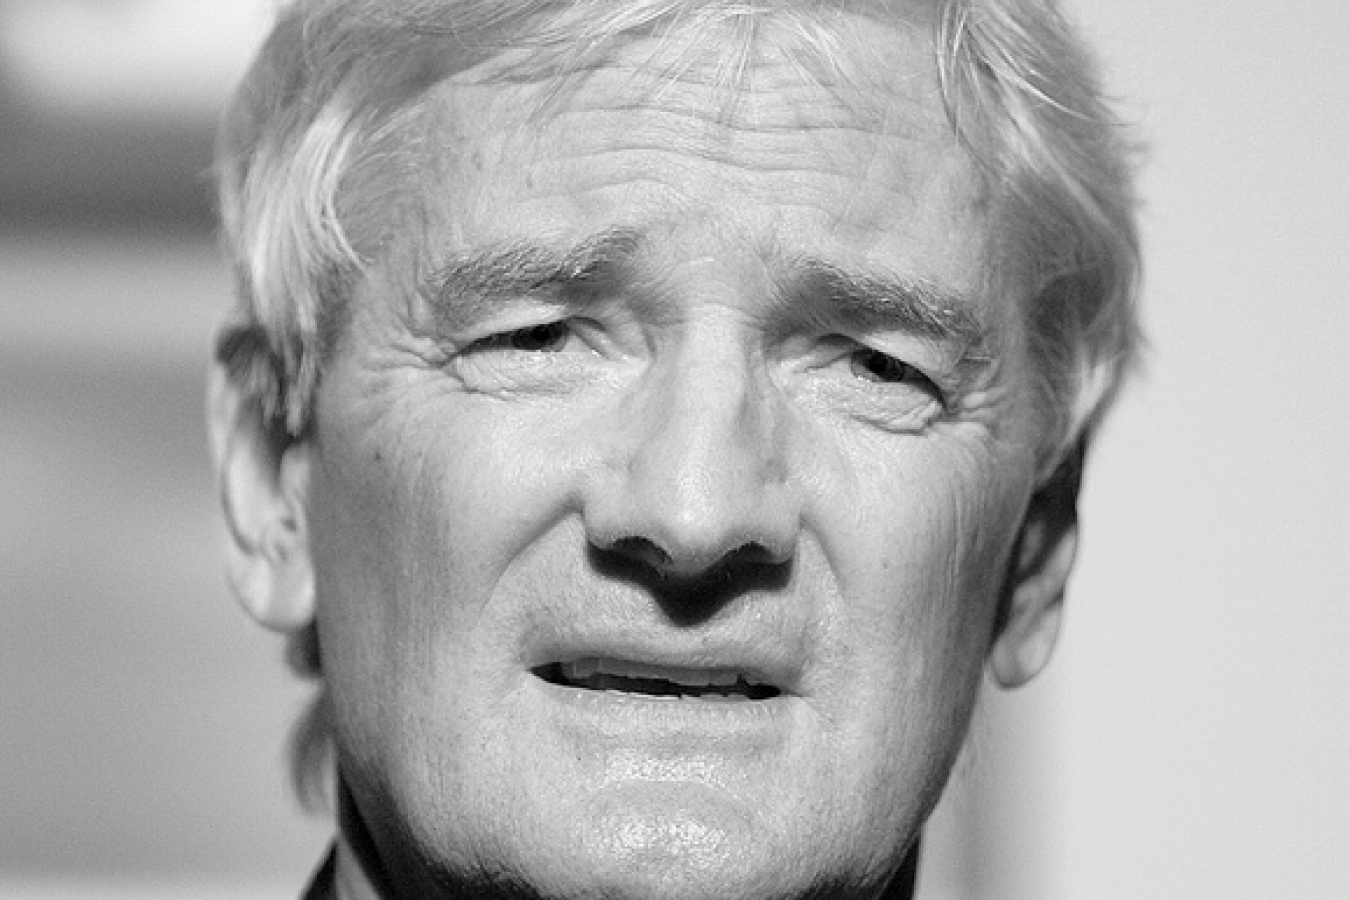 Sir James Dyson founder of Dyson wants more Tier 2 Visas